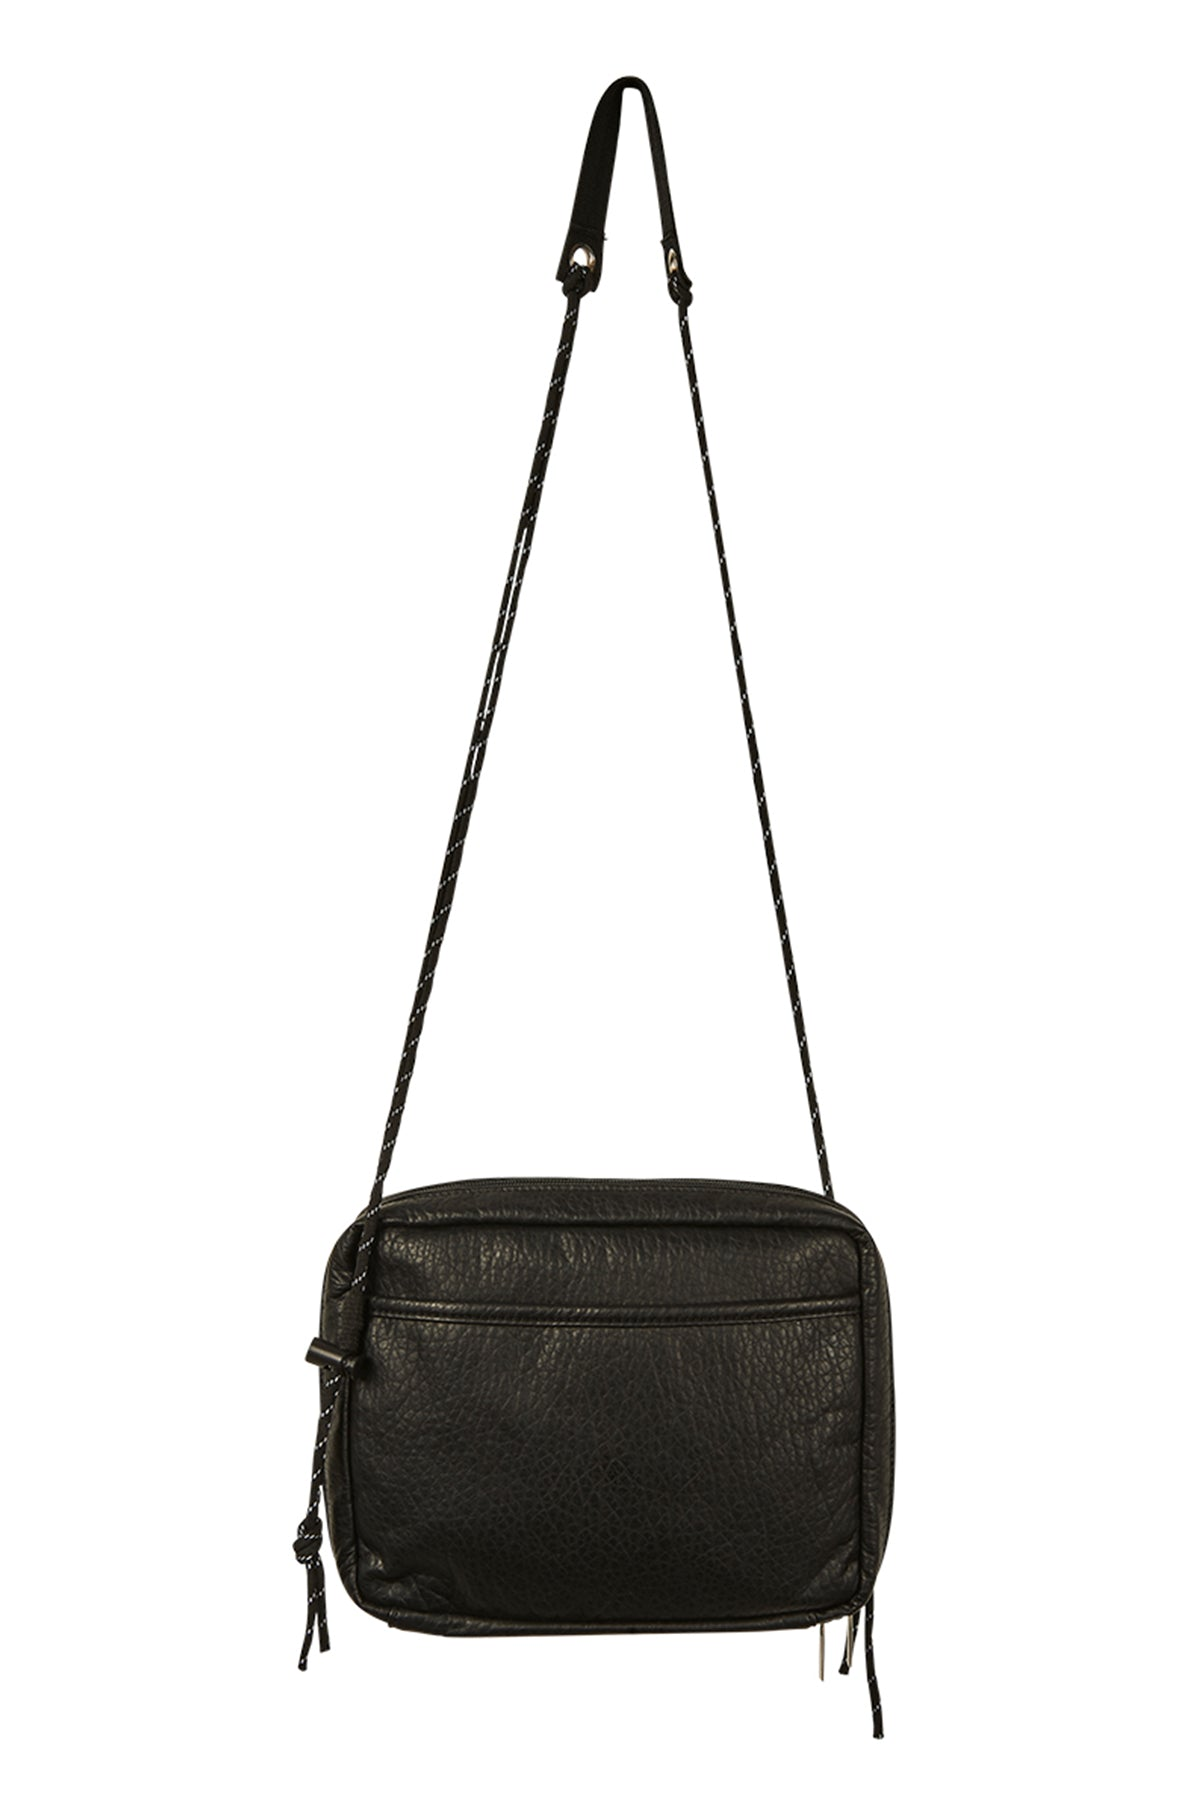 Coco Black Travel Bag